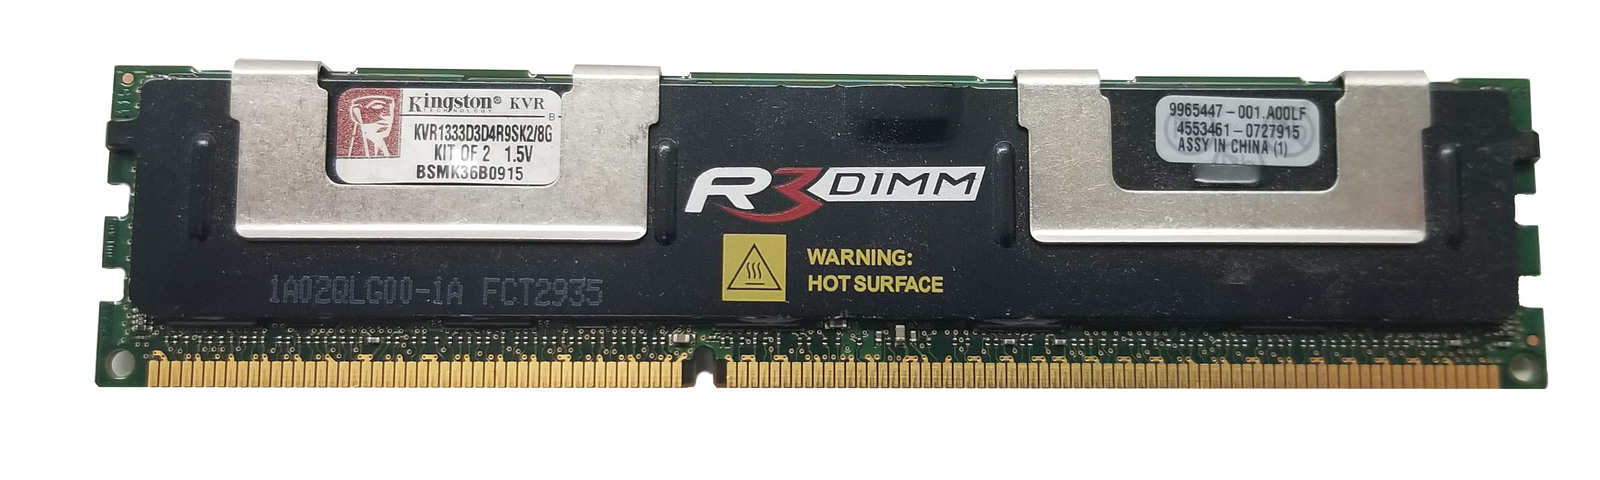 Kingston 8GB DDR3-1333 SERVER RAM (KVR1333D3D4R9S) Bin:10